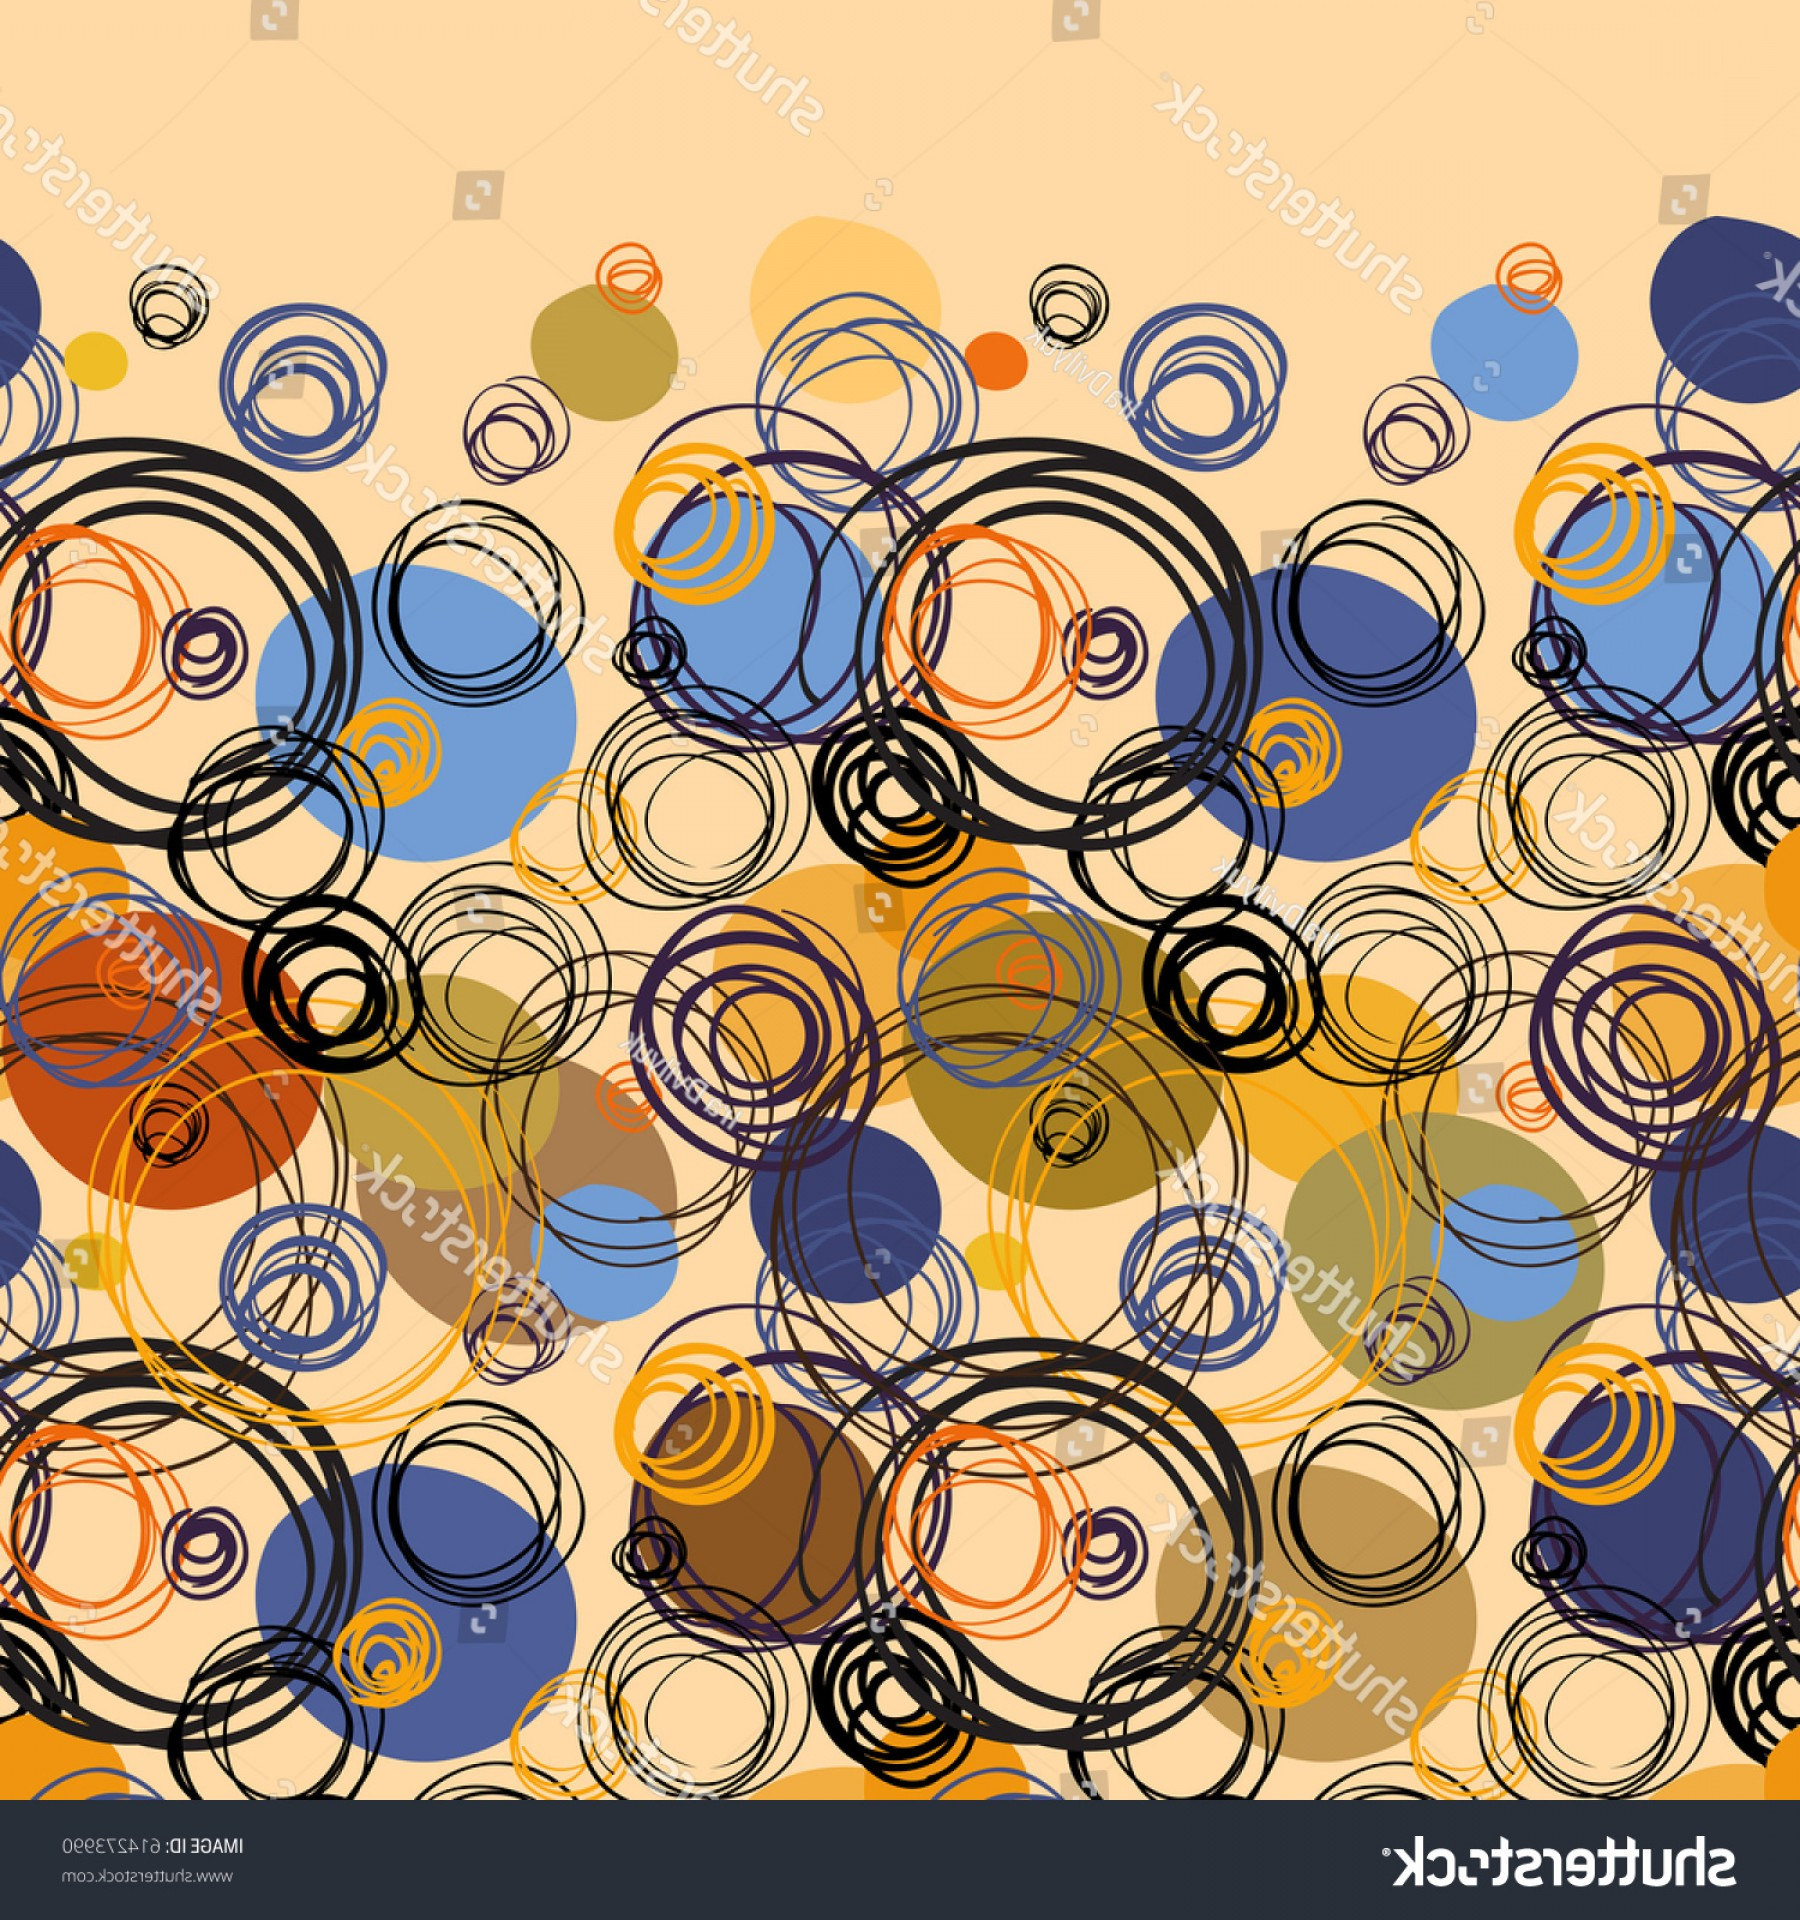 Blue And Orange Circle Vector: Orange Blue Geometric Abstract Circles Border